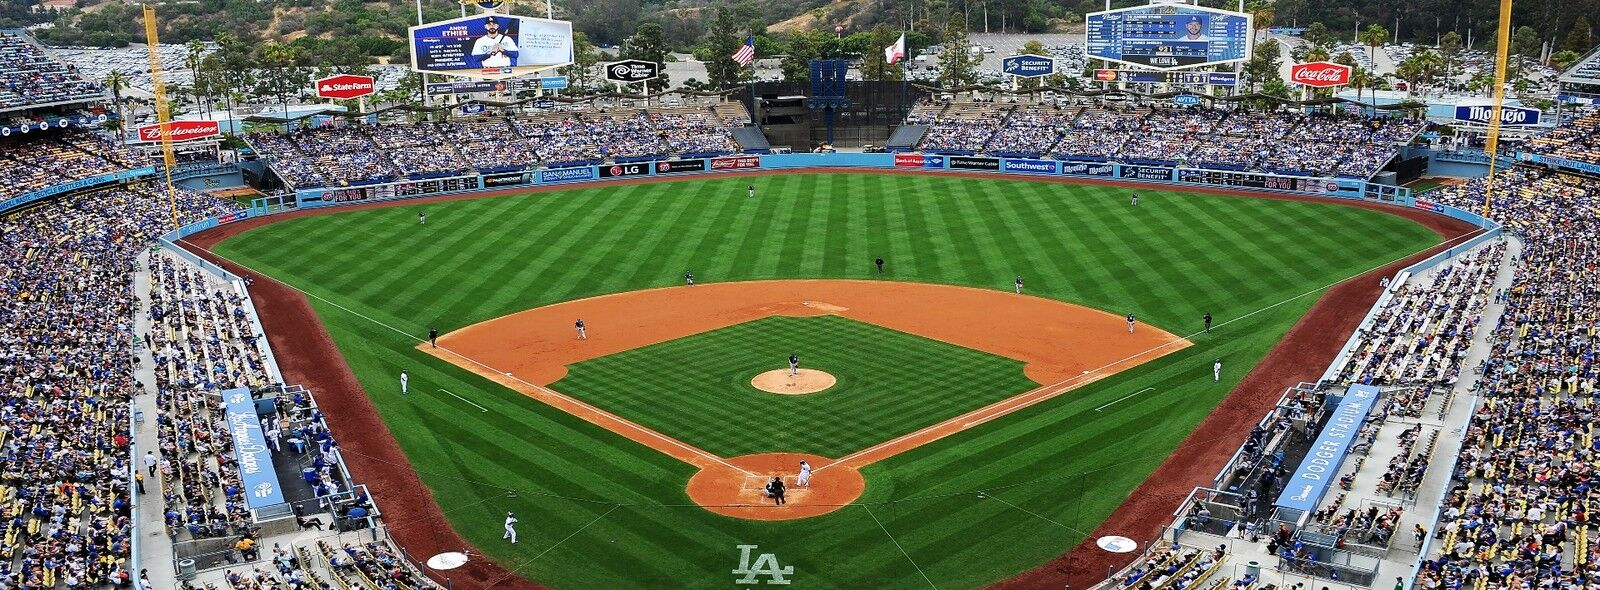 San Diego Padres at Los Angeles Dodgers Tickets (Julio Urias Bobblehead)